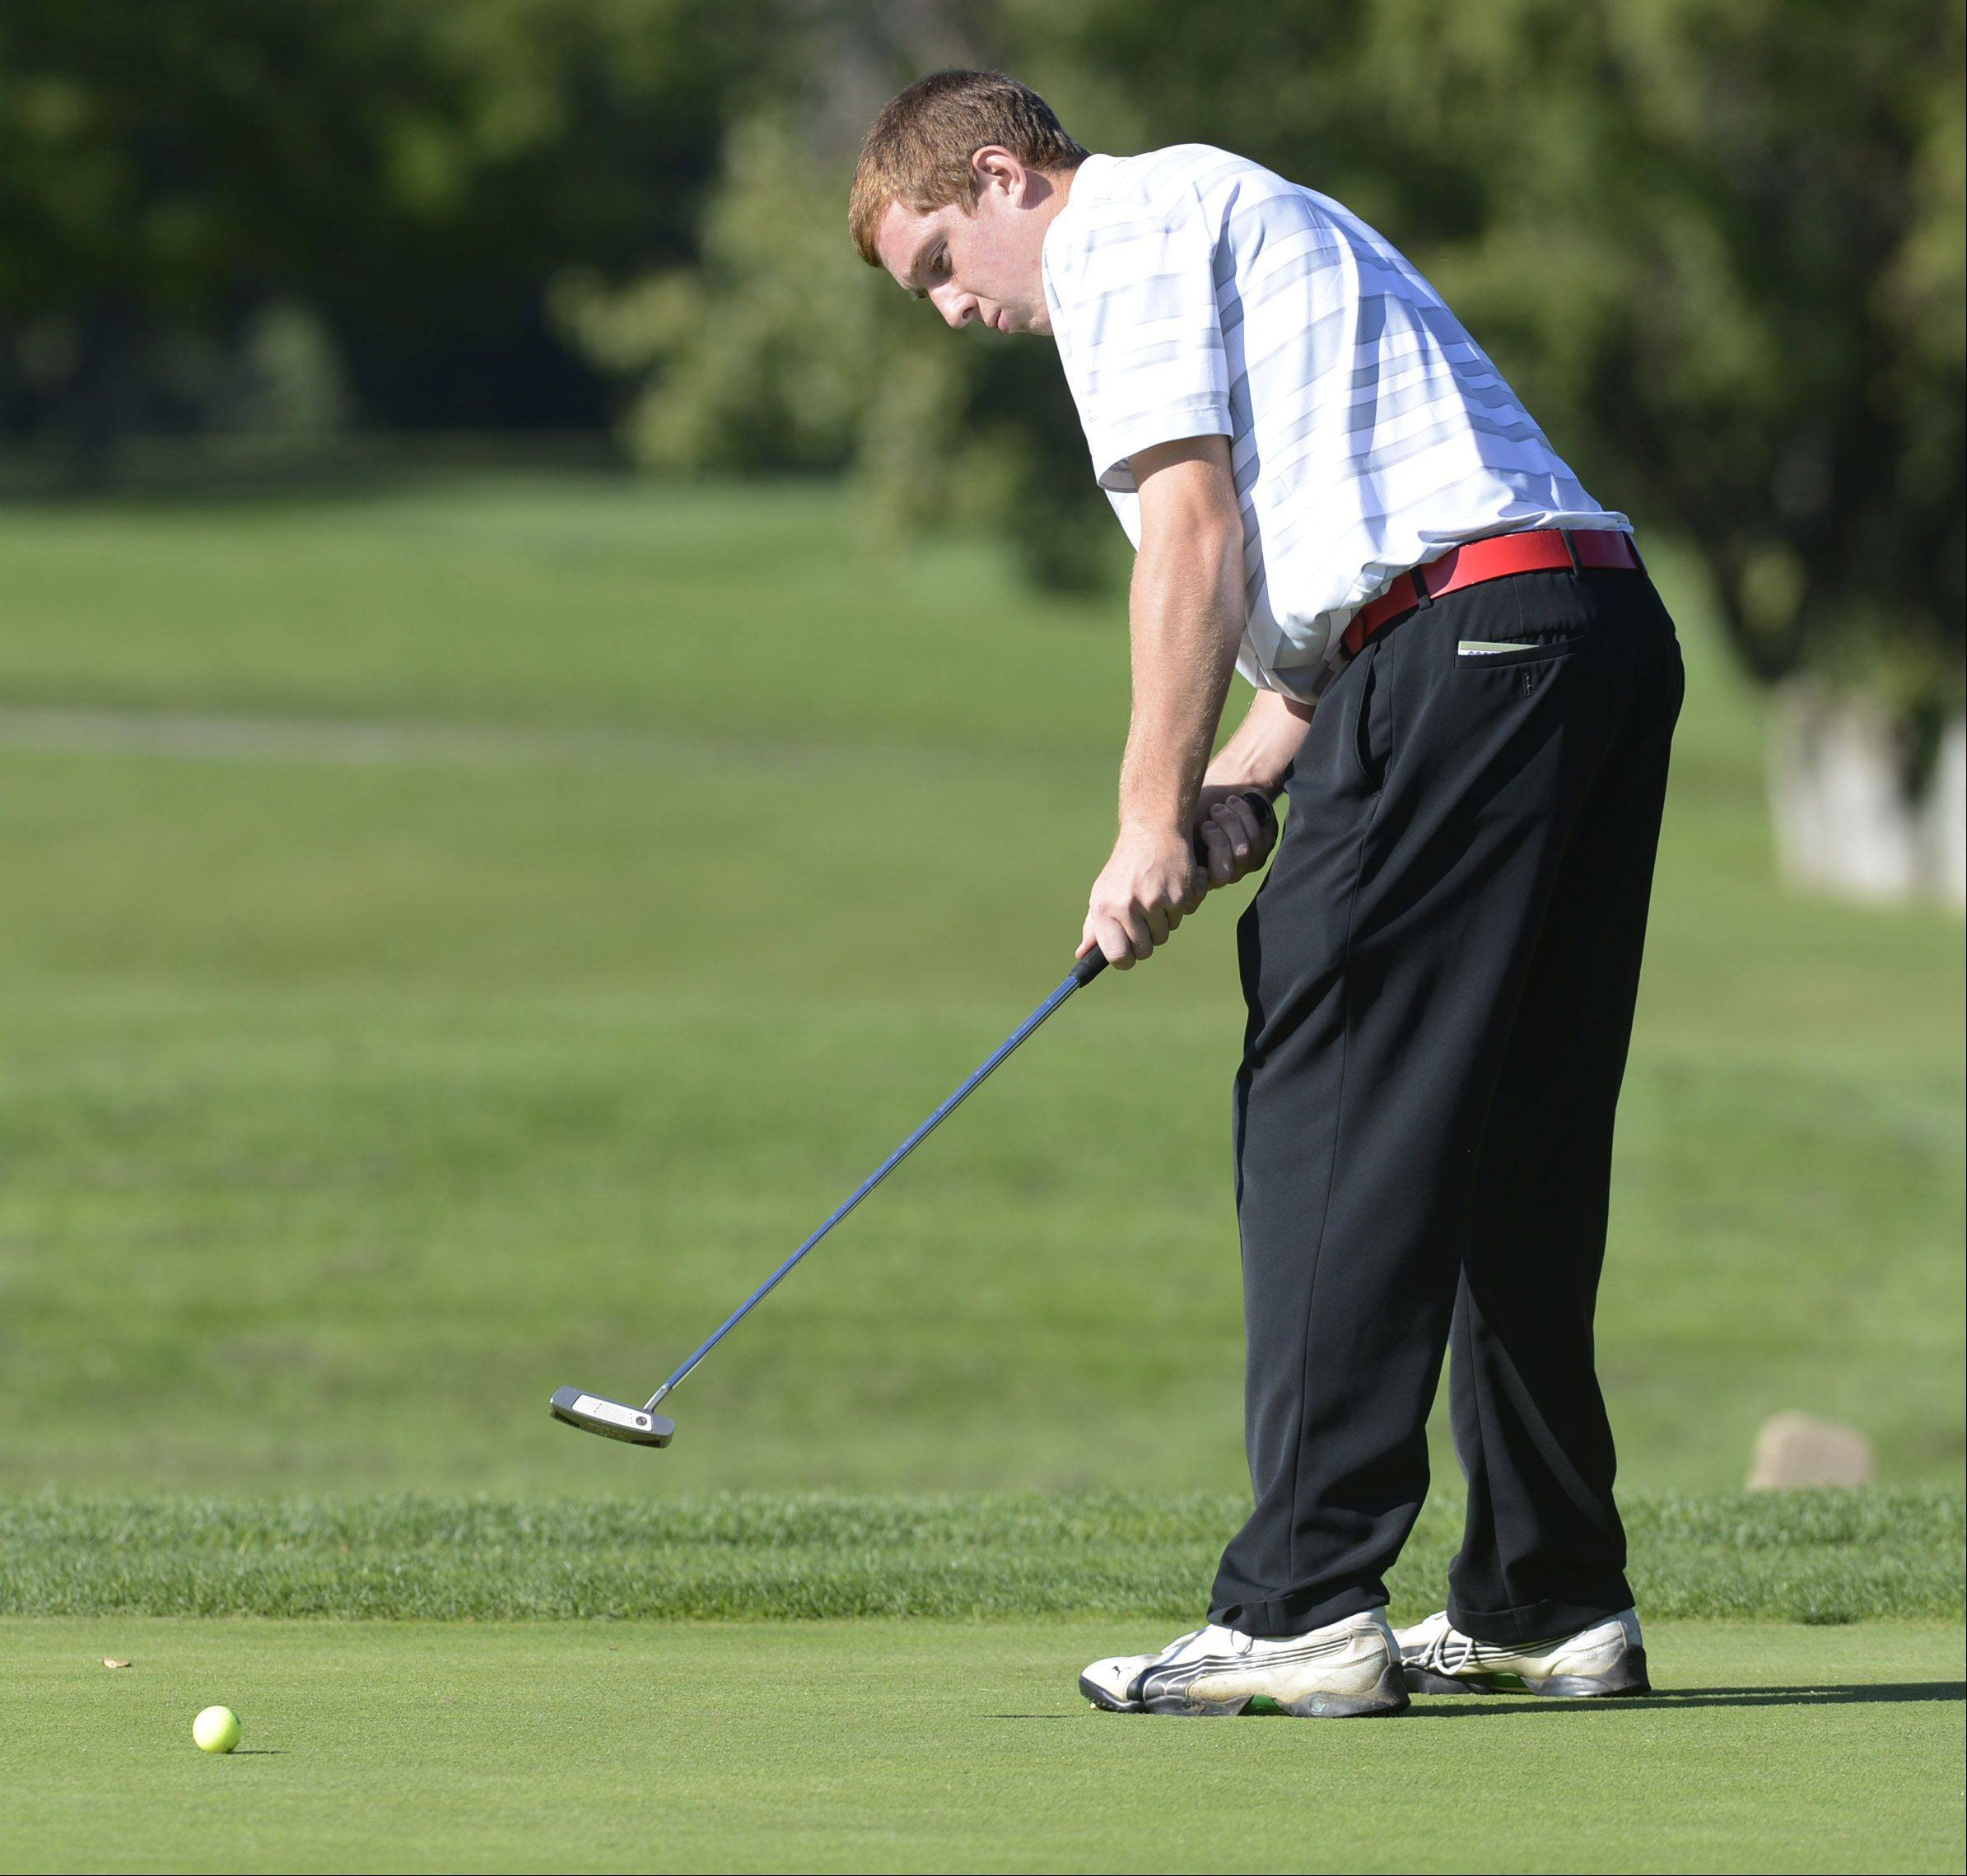 Palatine's Tim Klein putts on the first hole during Wednesday's match with Fremd at Palatine Hills Golf Course.